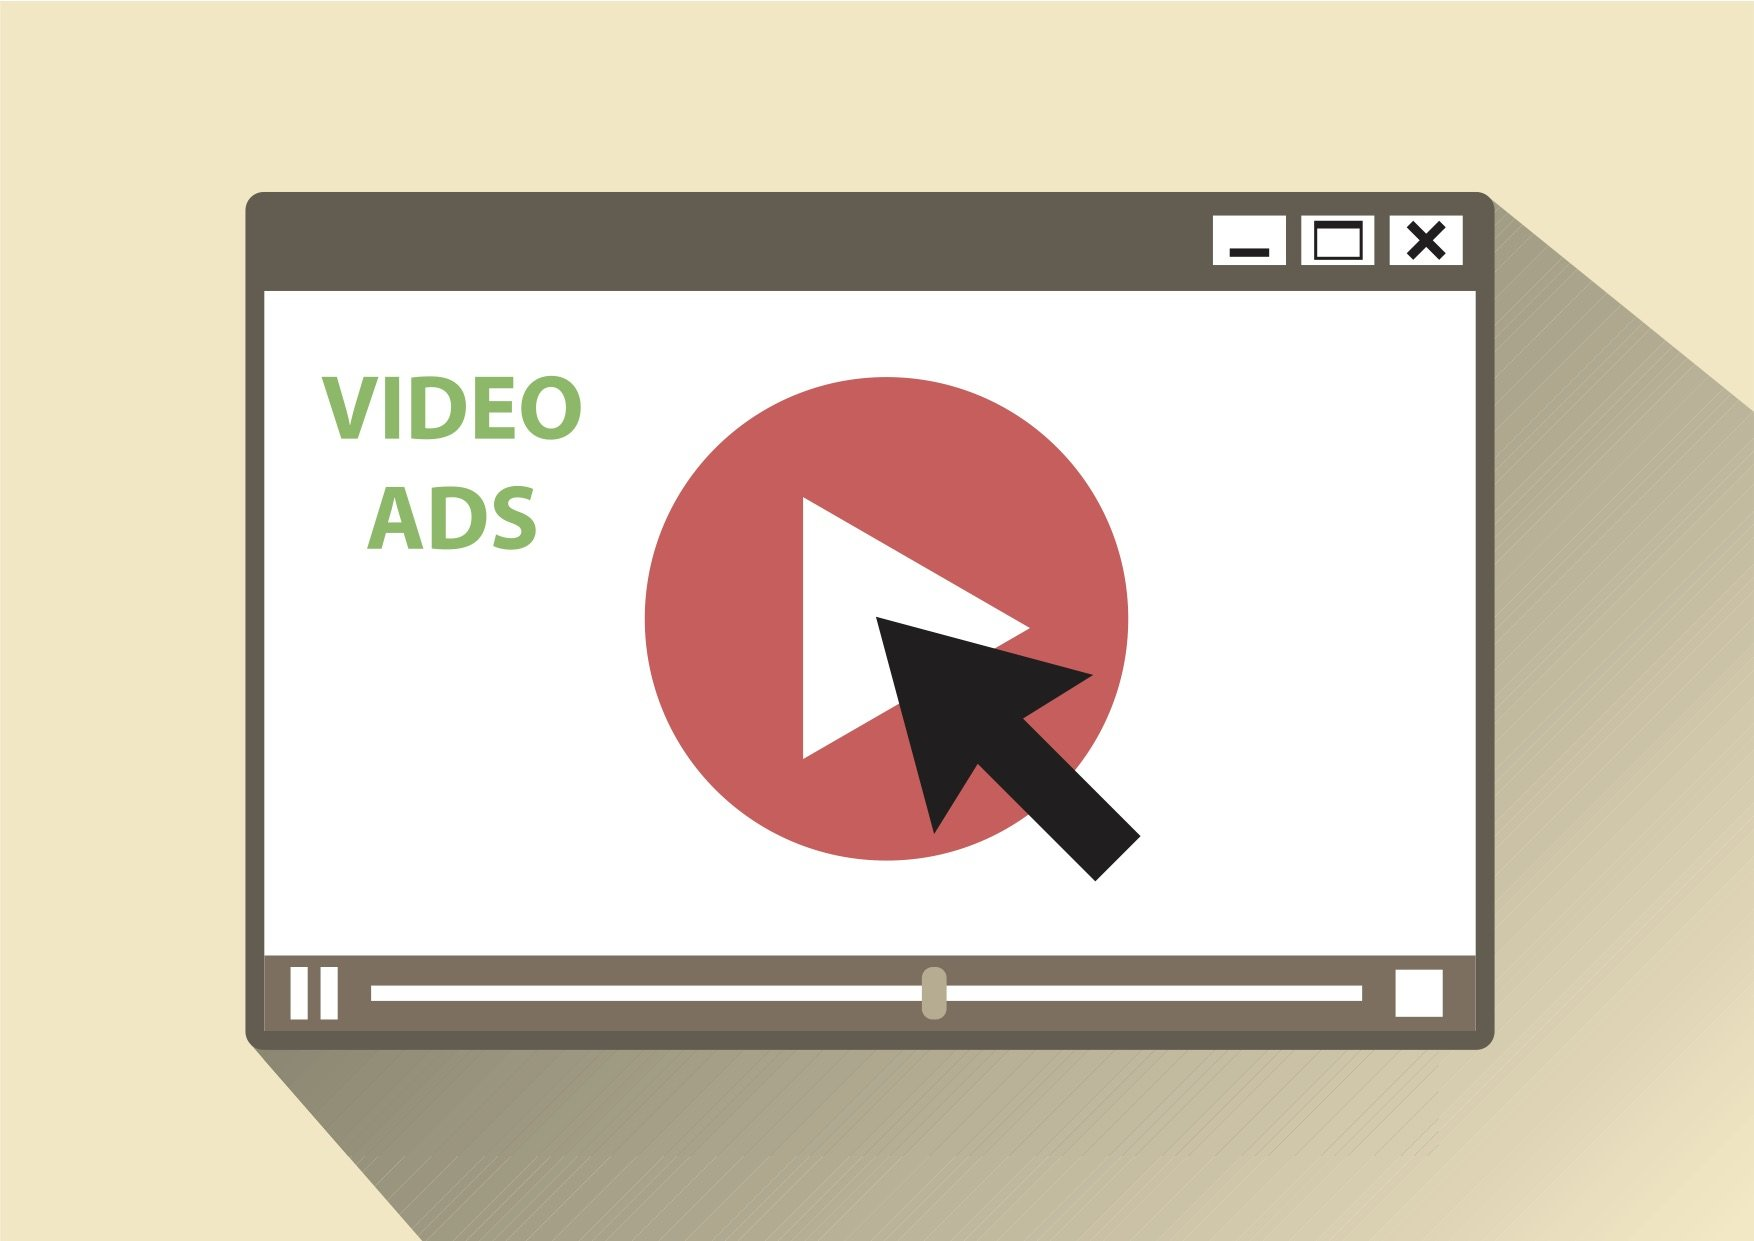 Pre-roll ads, YouTube ads